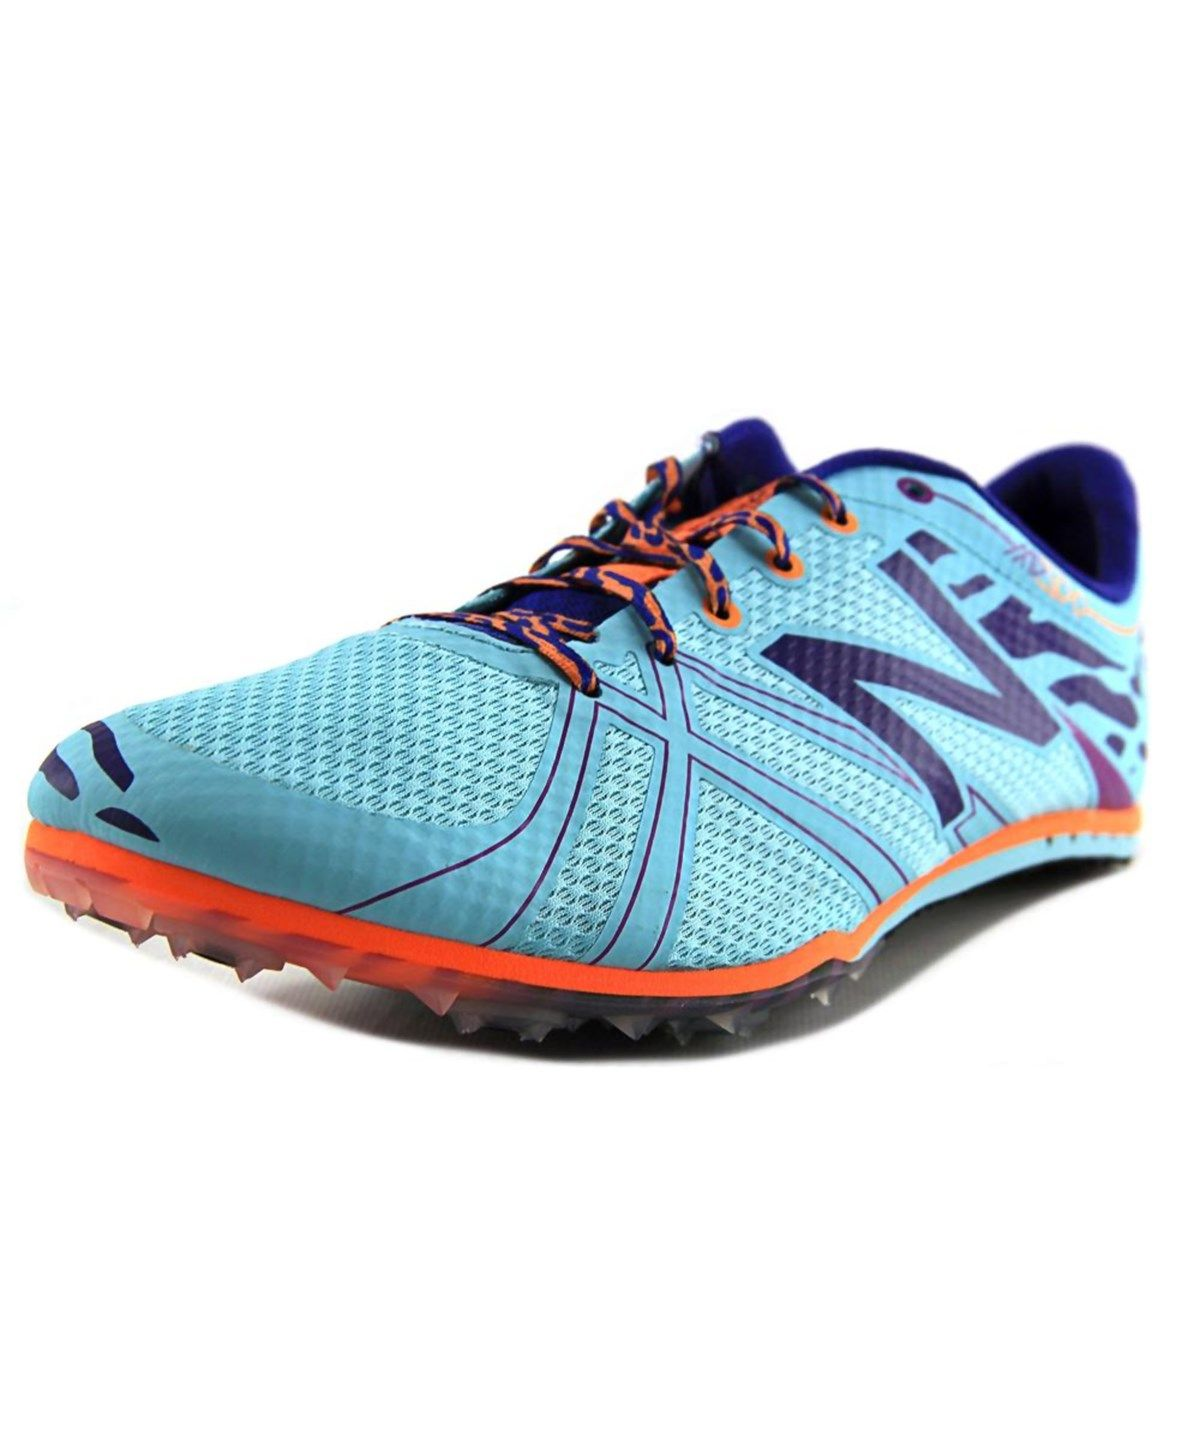 NEW BALANCE New Balance Wmd500 Women  Round Toe Synthetic Blue Cleats'. #newbalance #shoes #sneakers